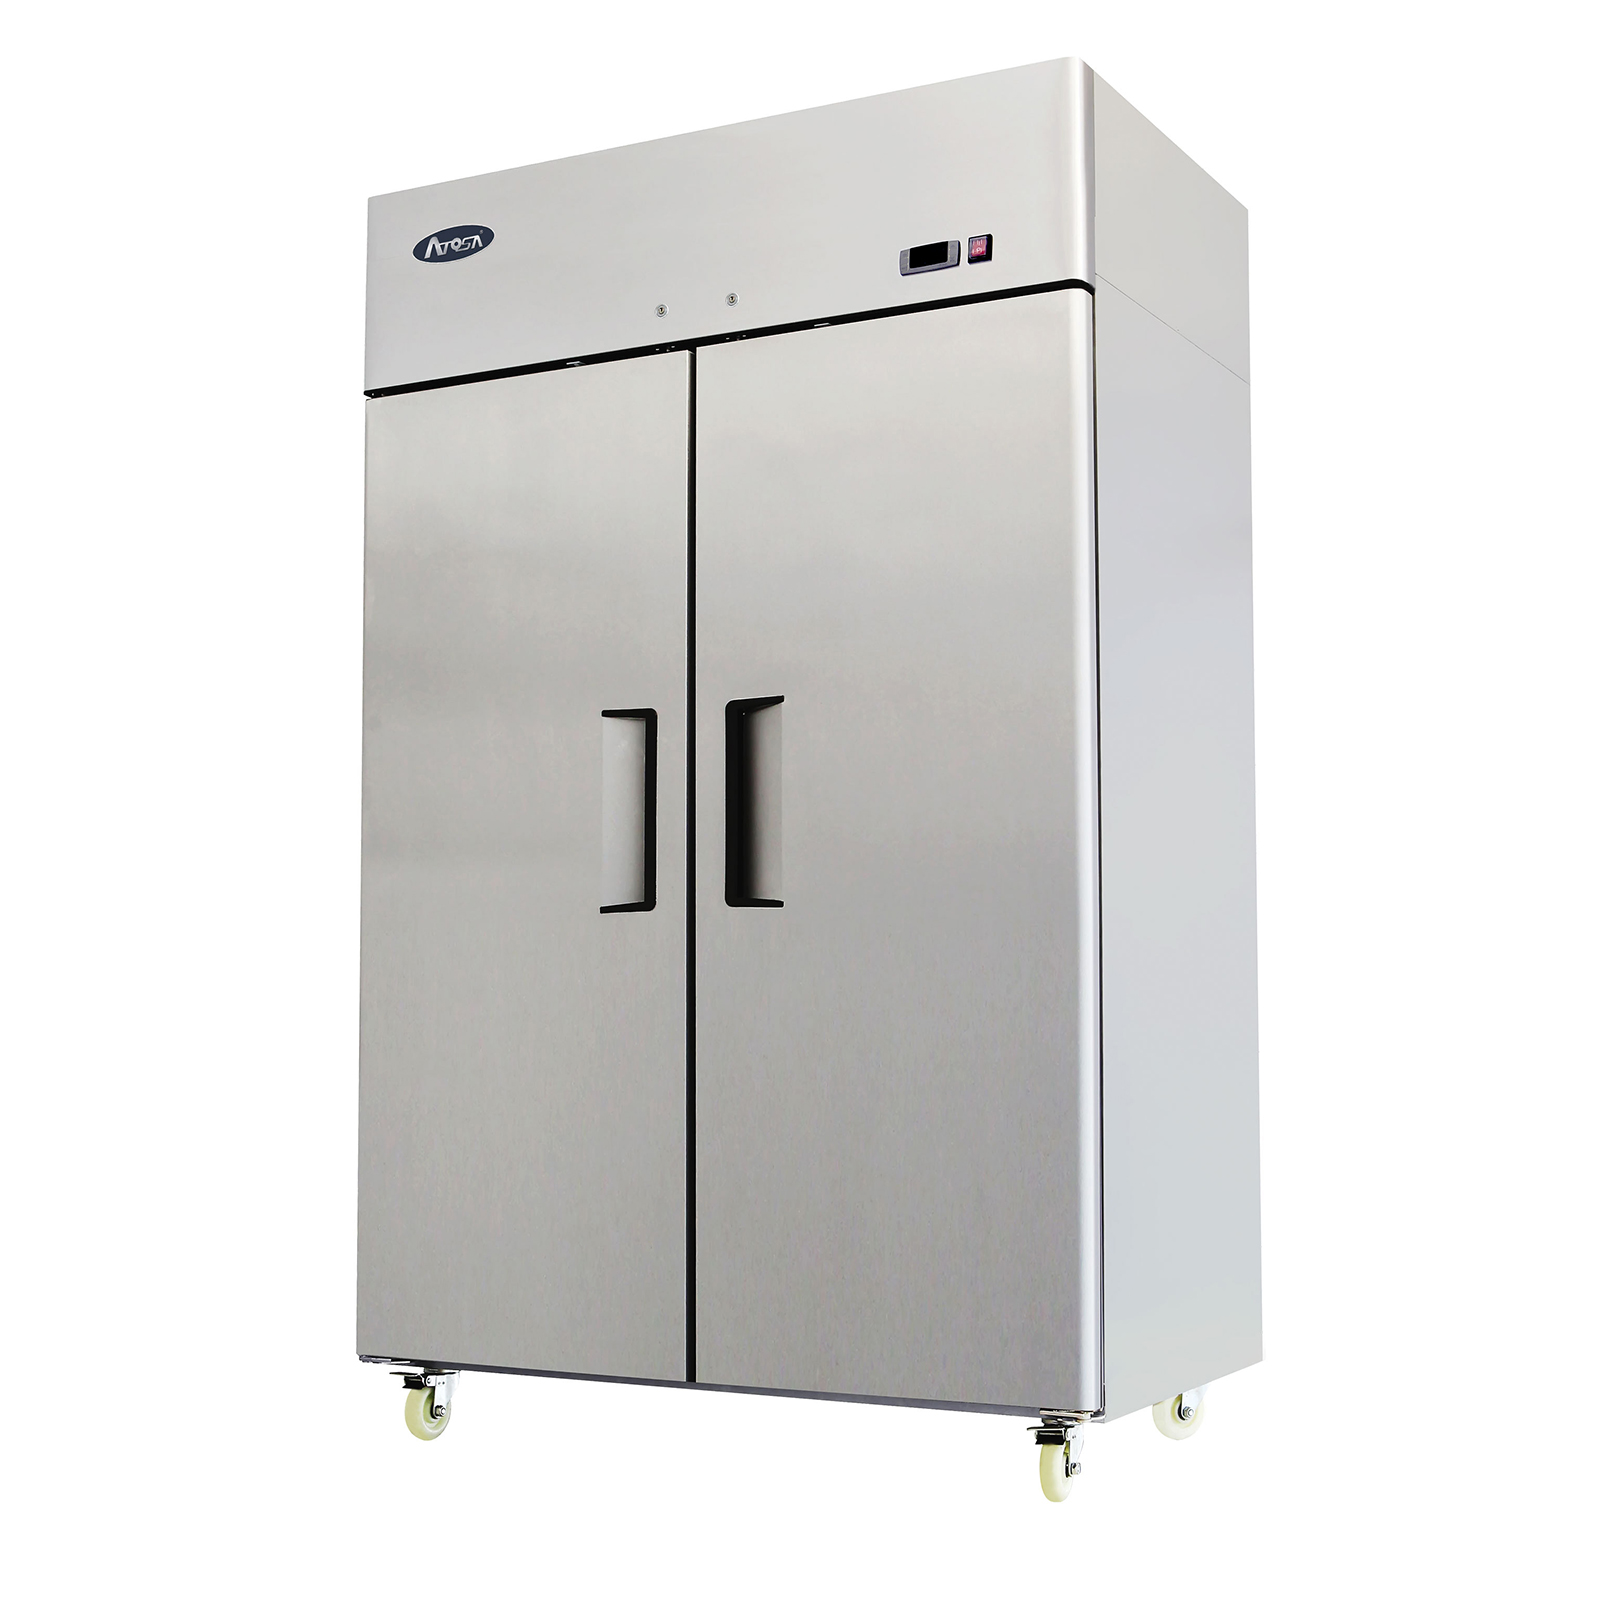 Atosa USA MBF8002GR freezer, reach-in